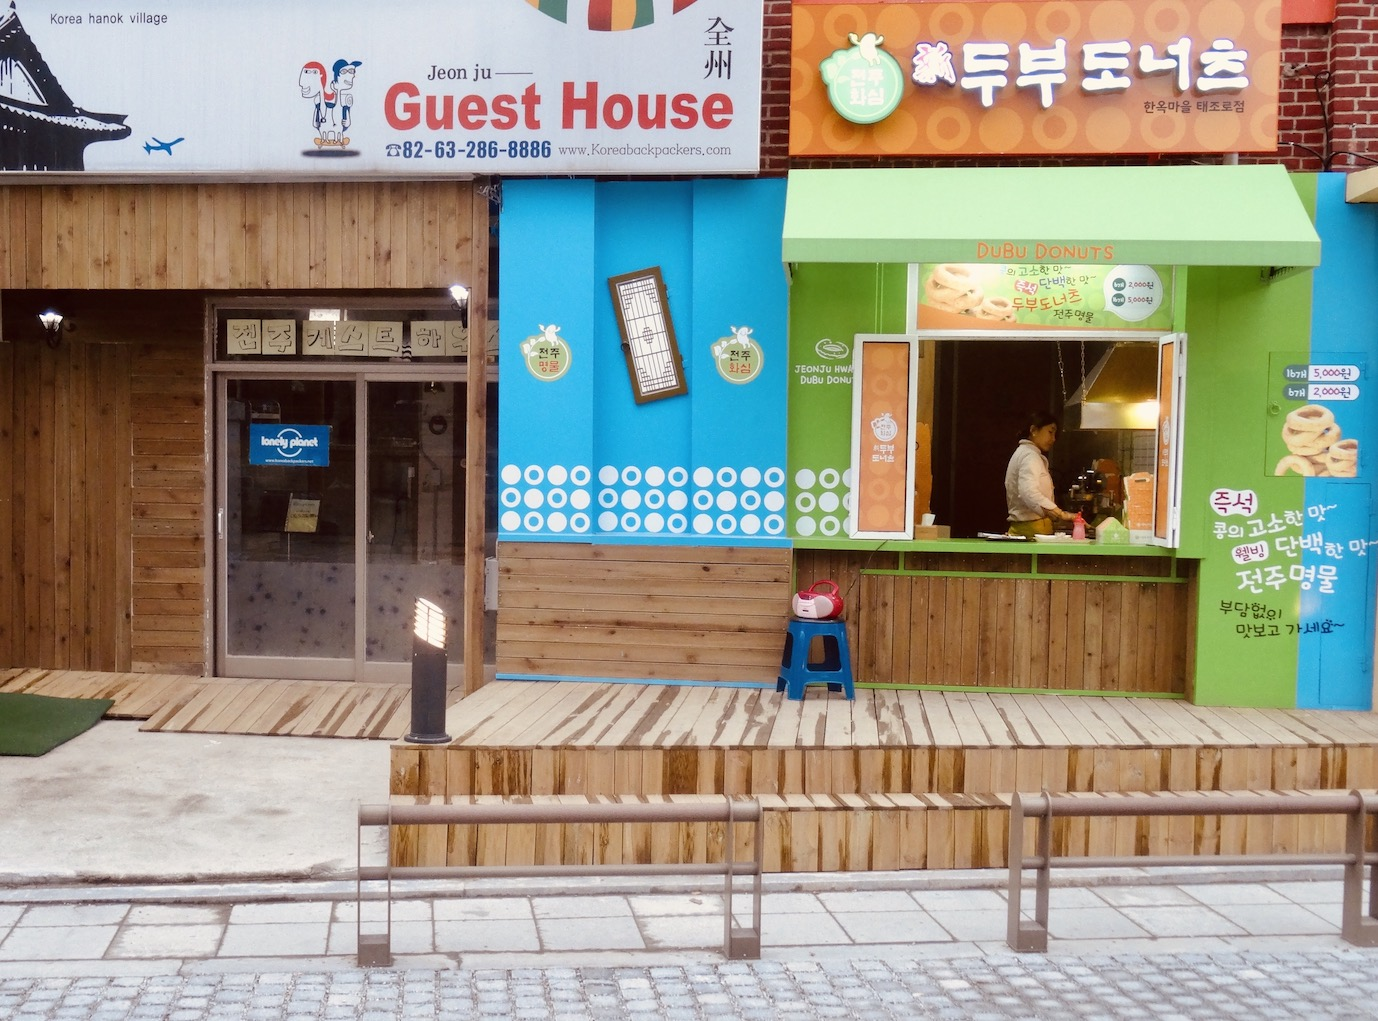 Jeonju Guesthouse South Korea.